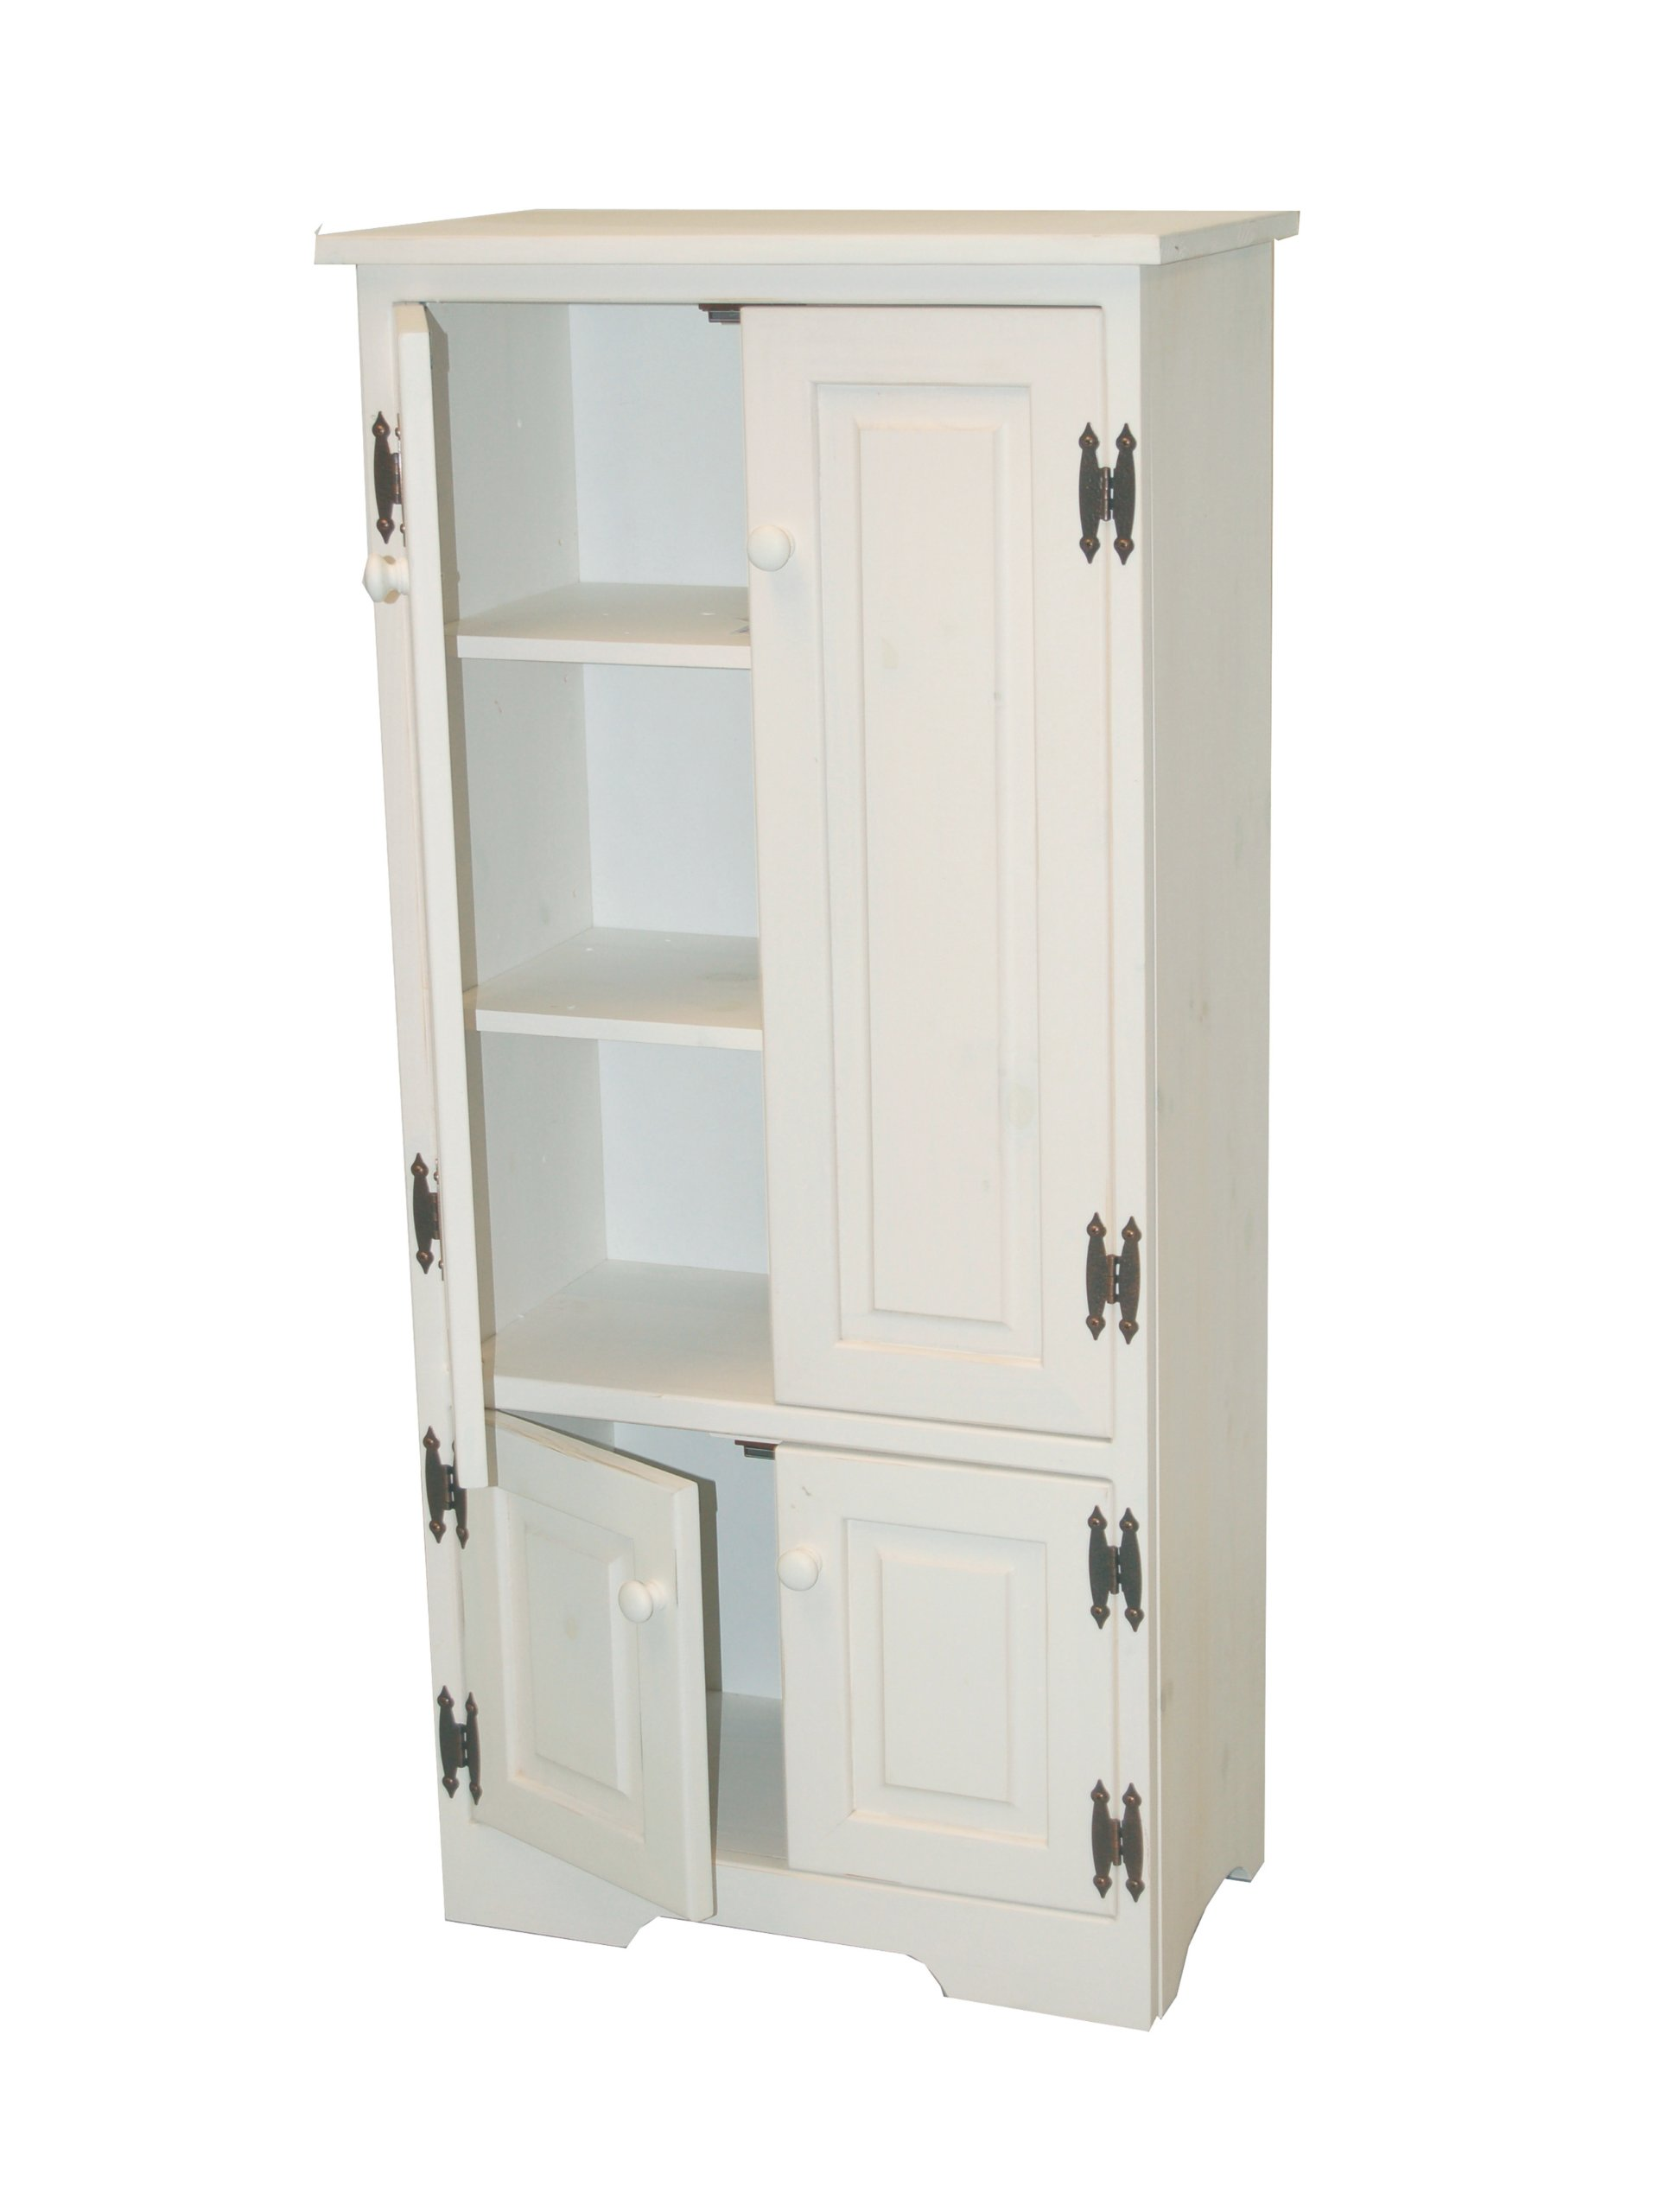 Target Marketing Systems Tall Storage Cabinet with 2 Adjustable Top Shelves and 1 Bottom Shelf, White by Target Marketing Systems